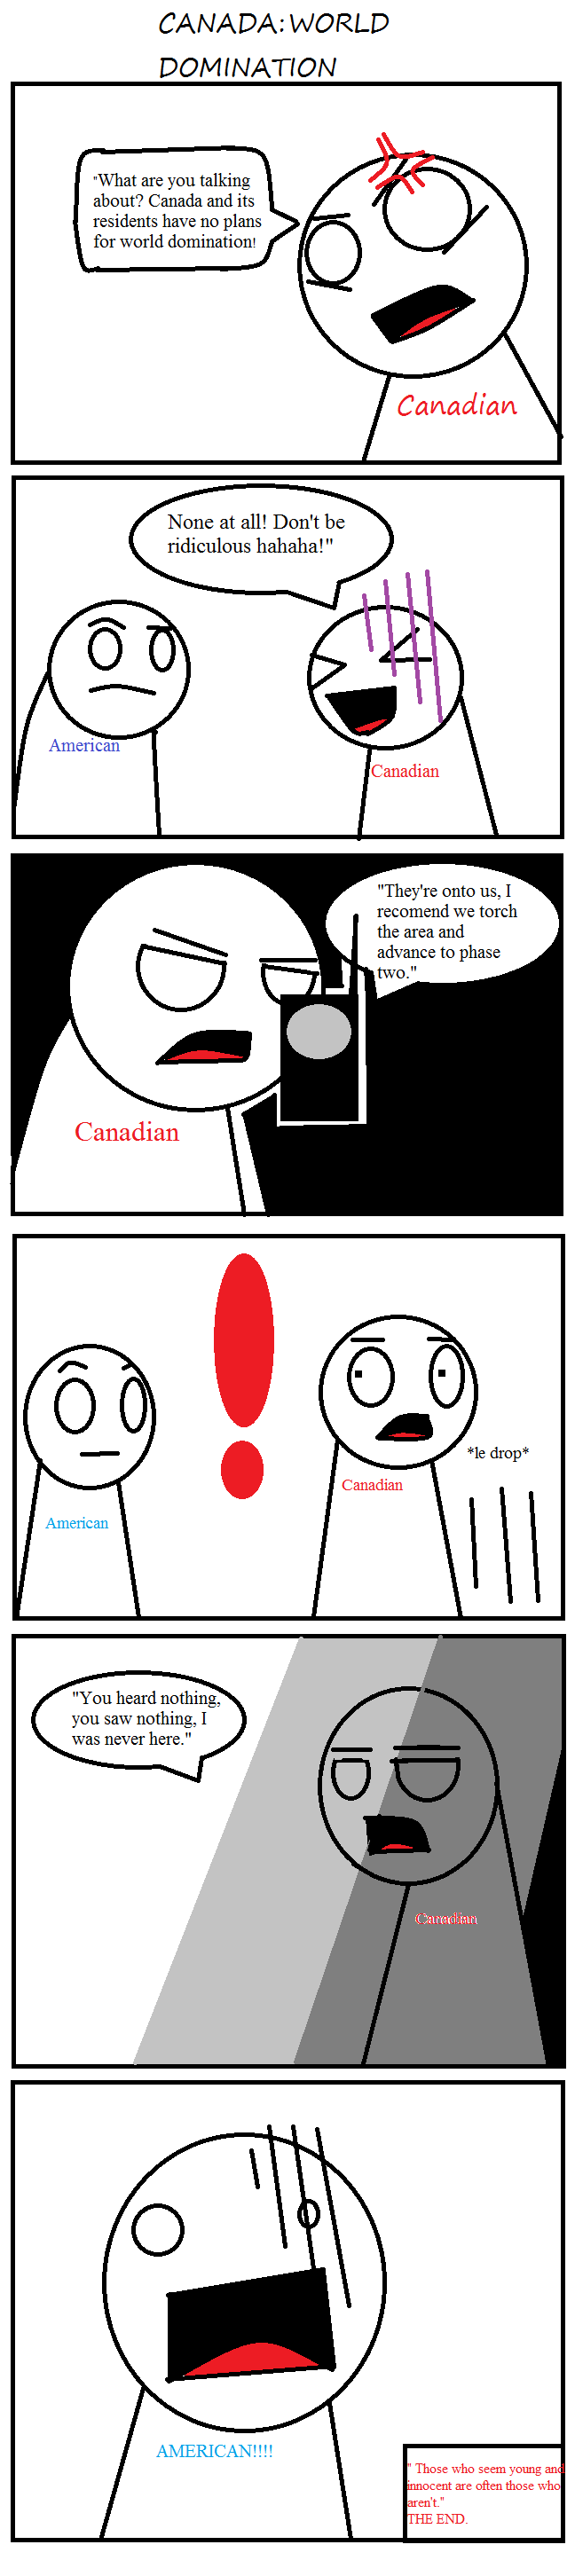 Canadian world domination